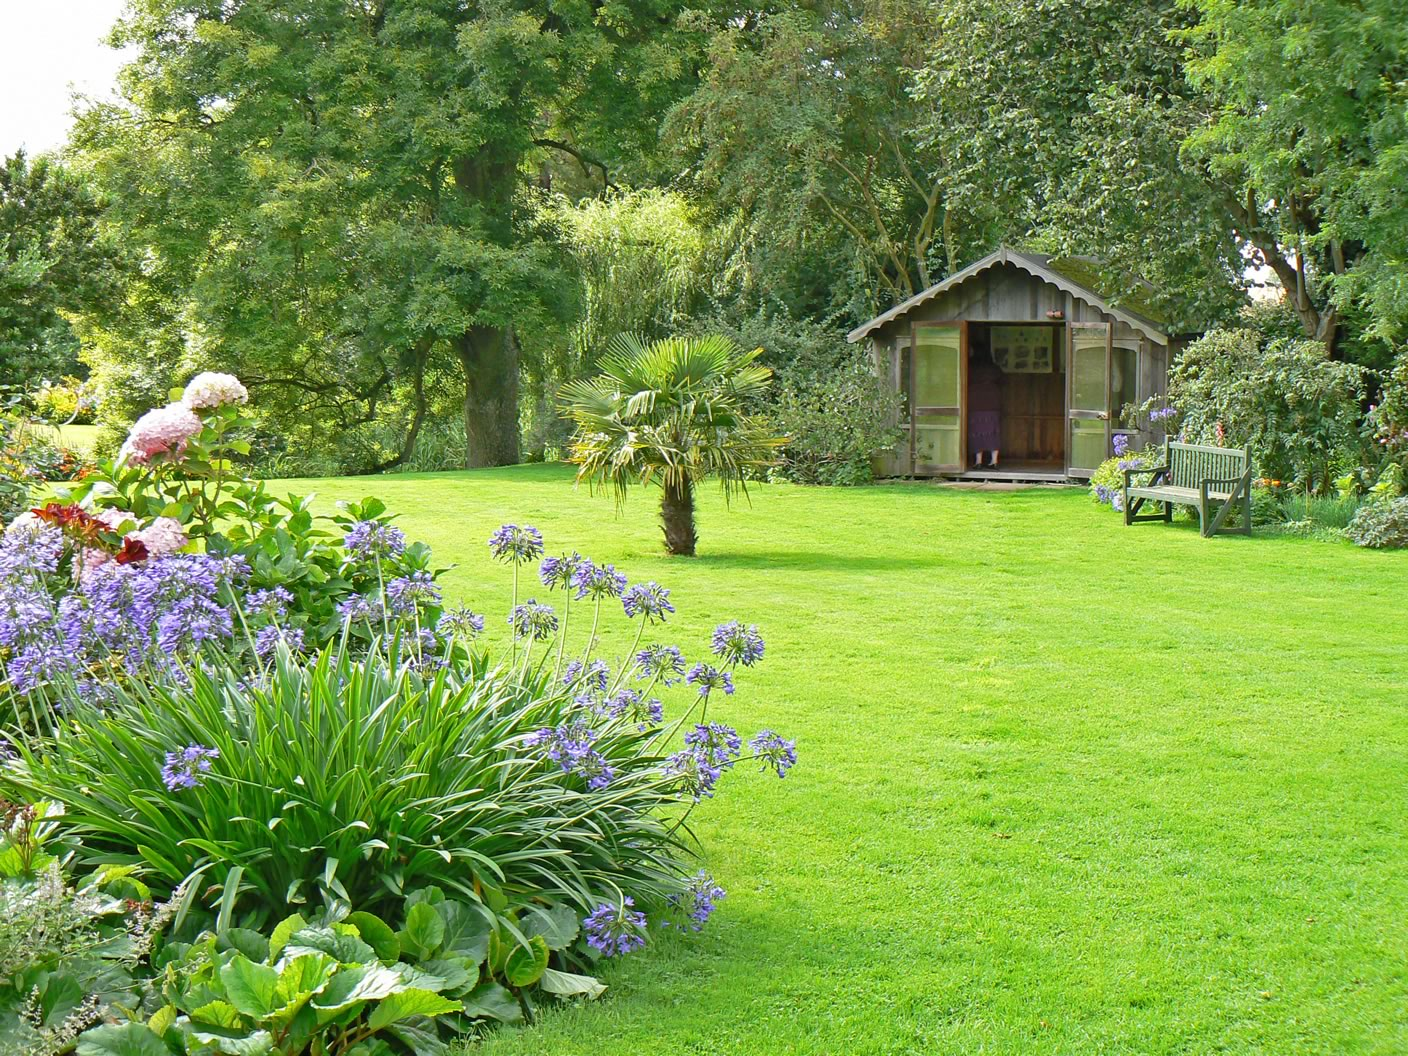 Garden lawn ideas lawn and hedge care for Home and garden maintenance